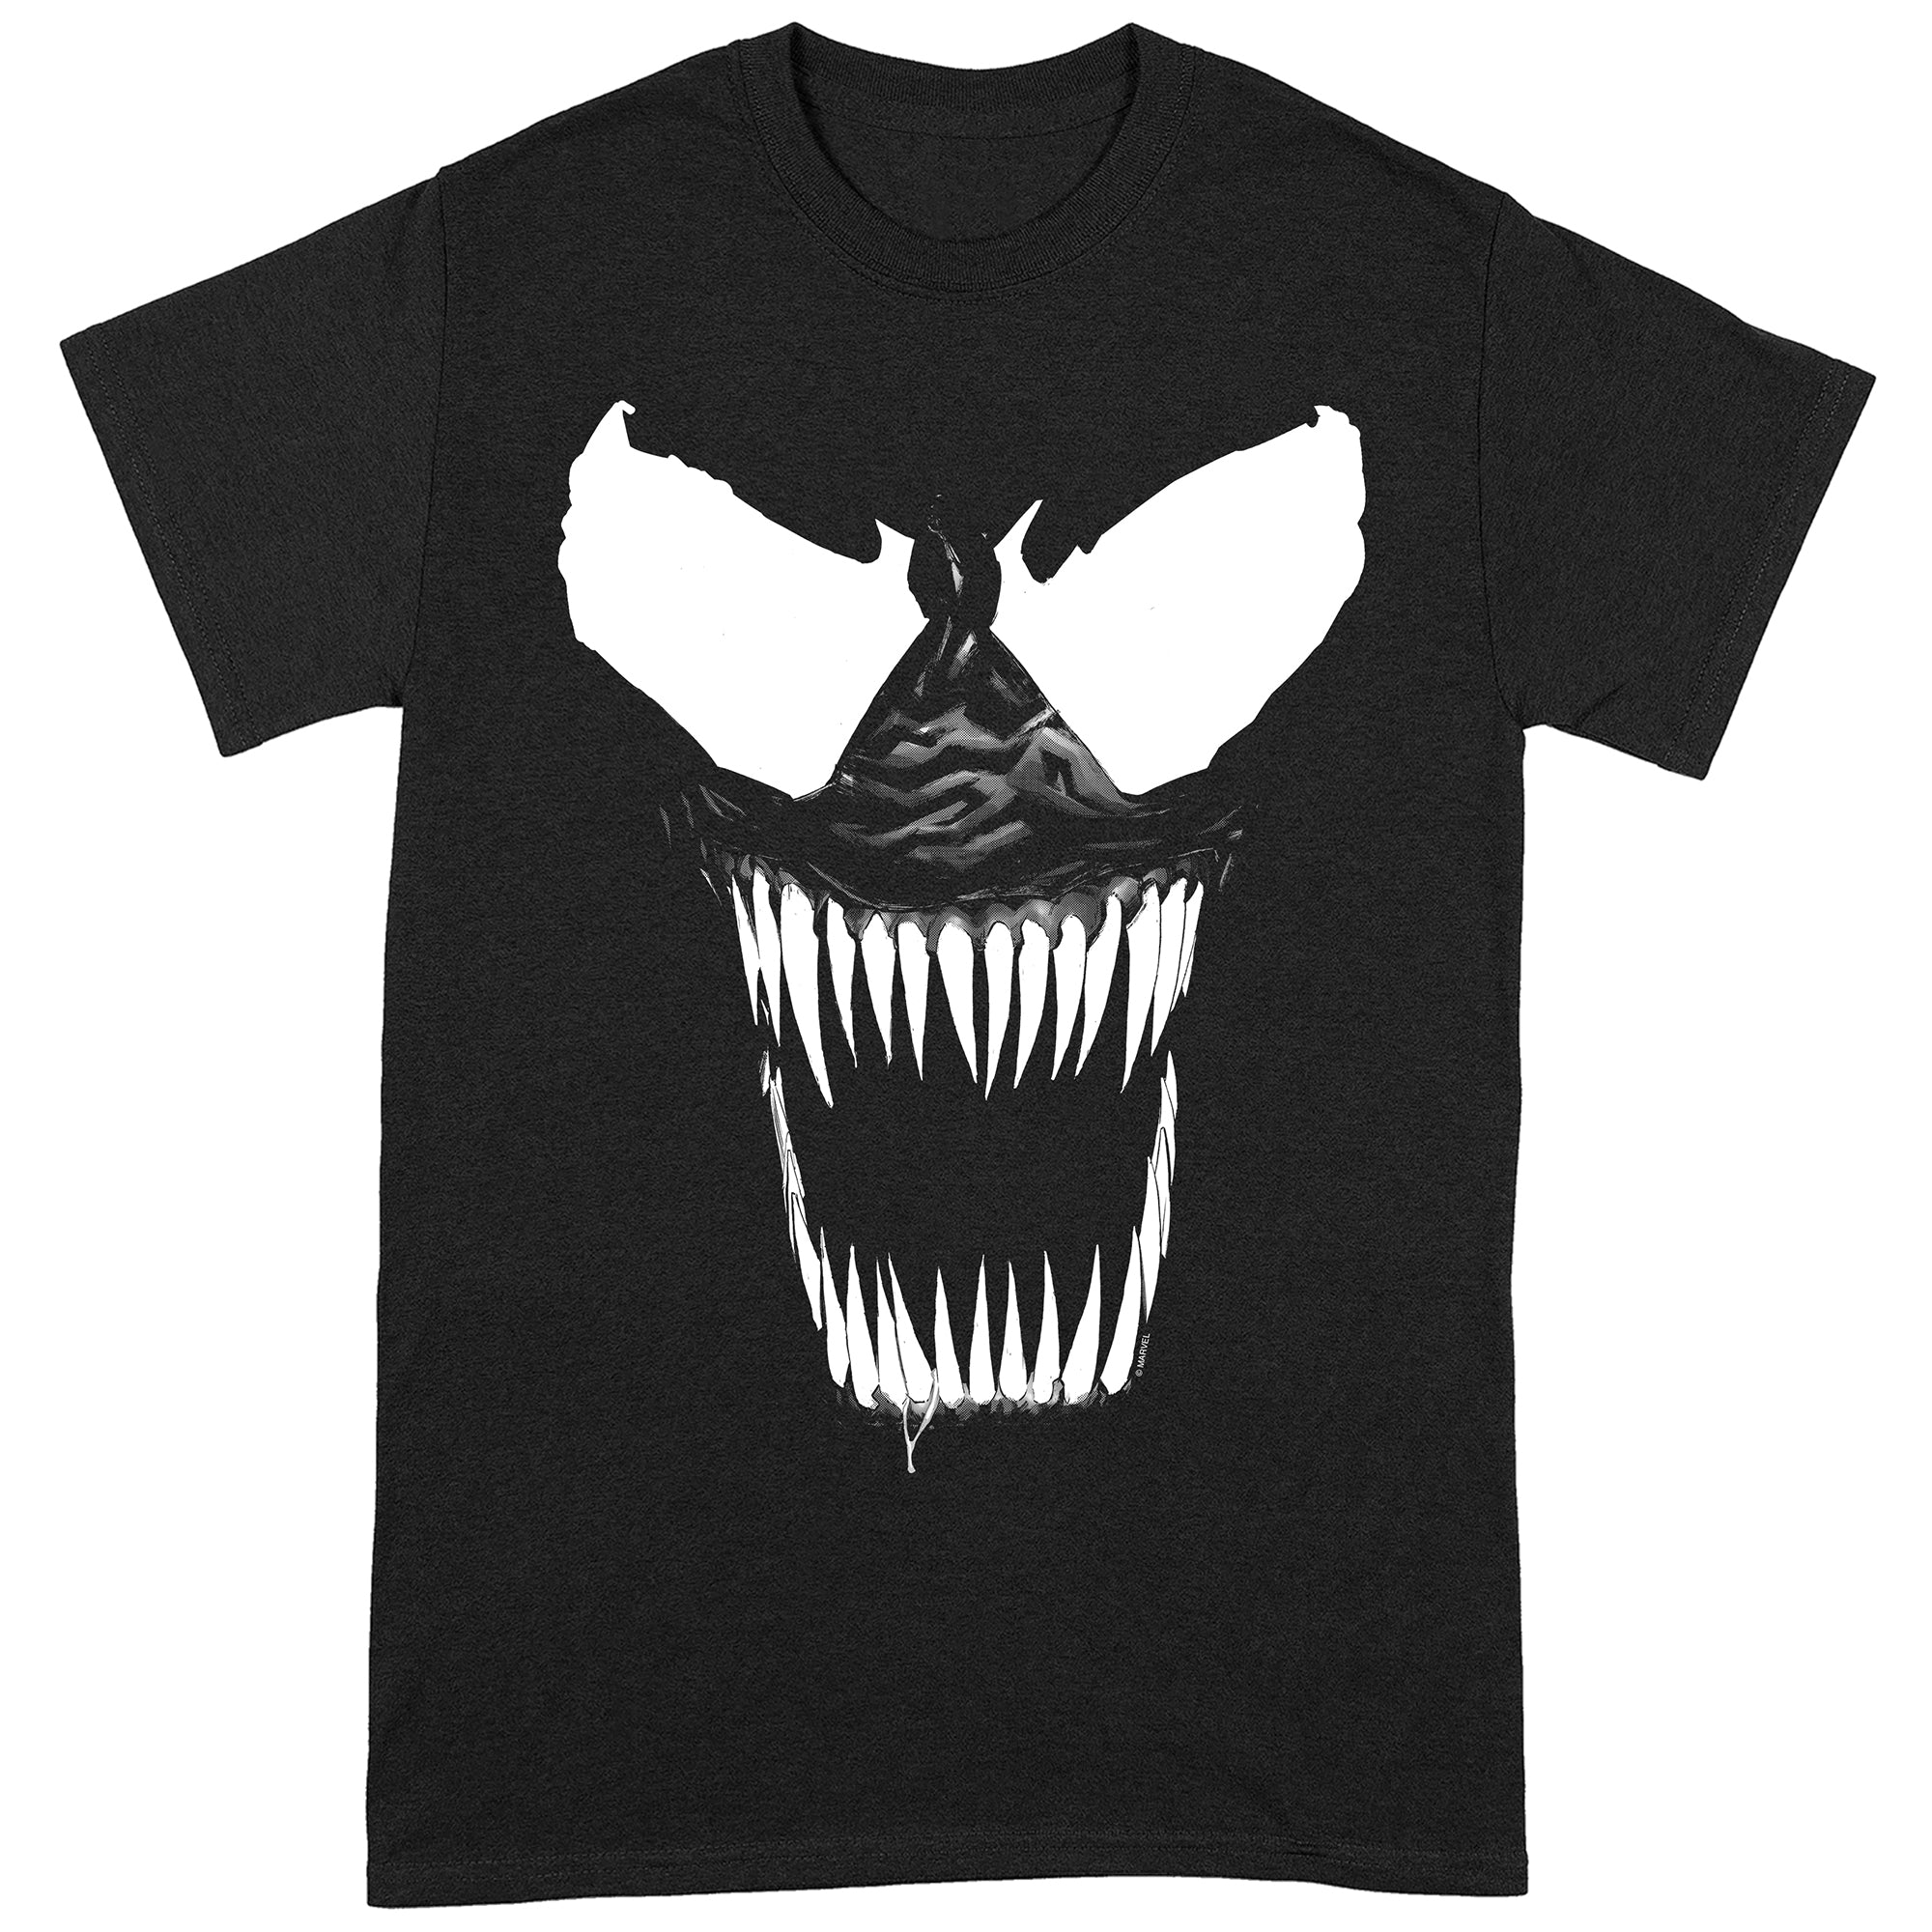 Venom Bare Teeth T-Shirt